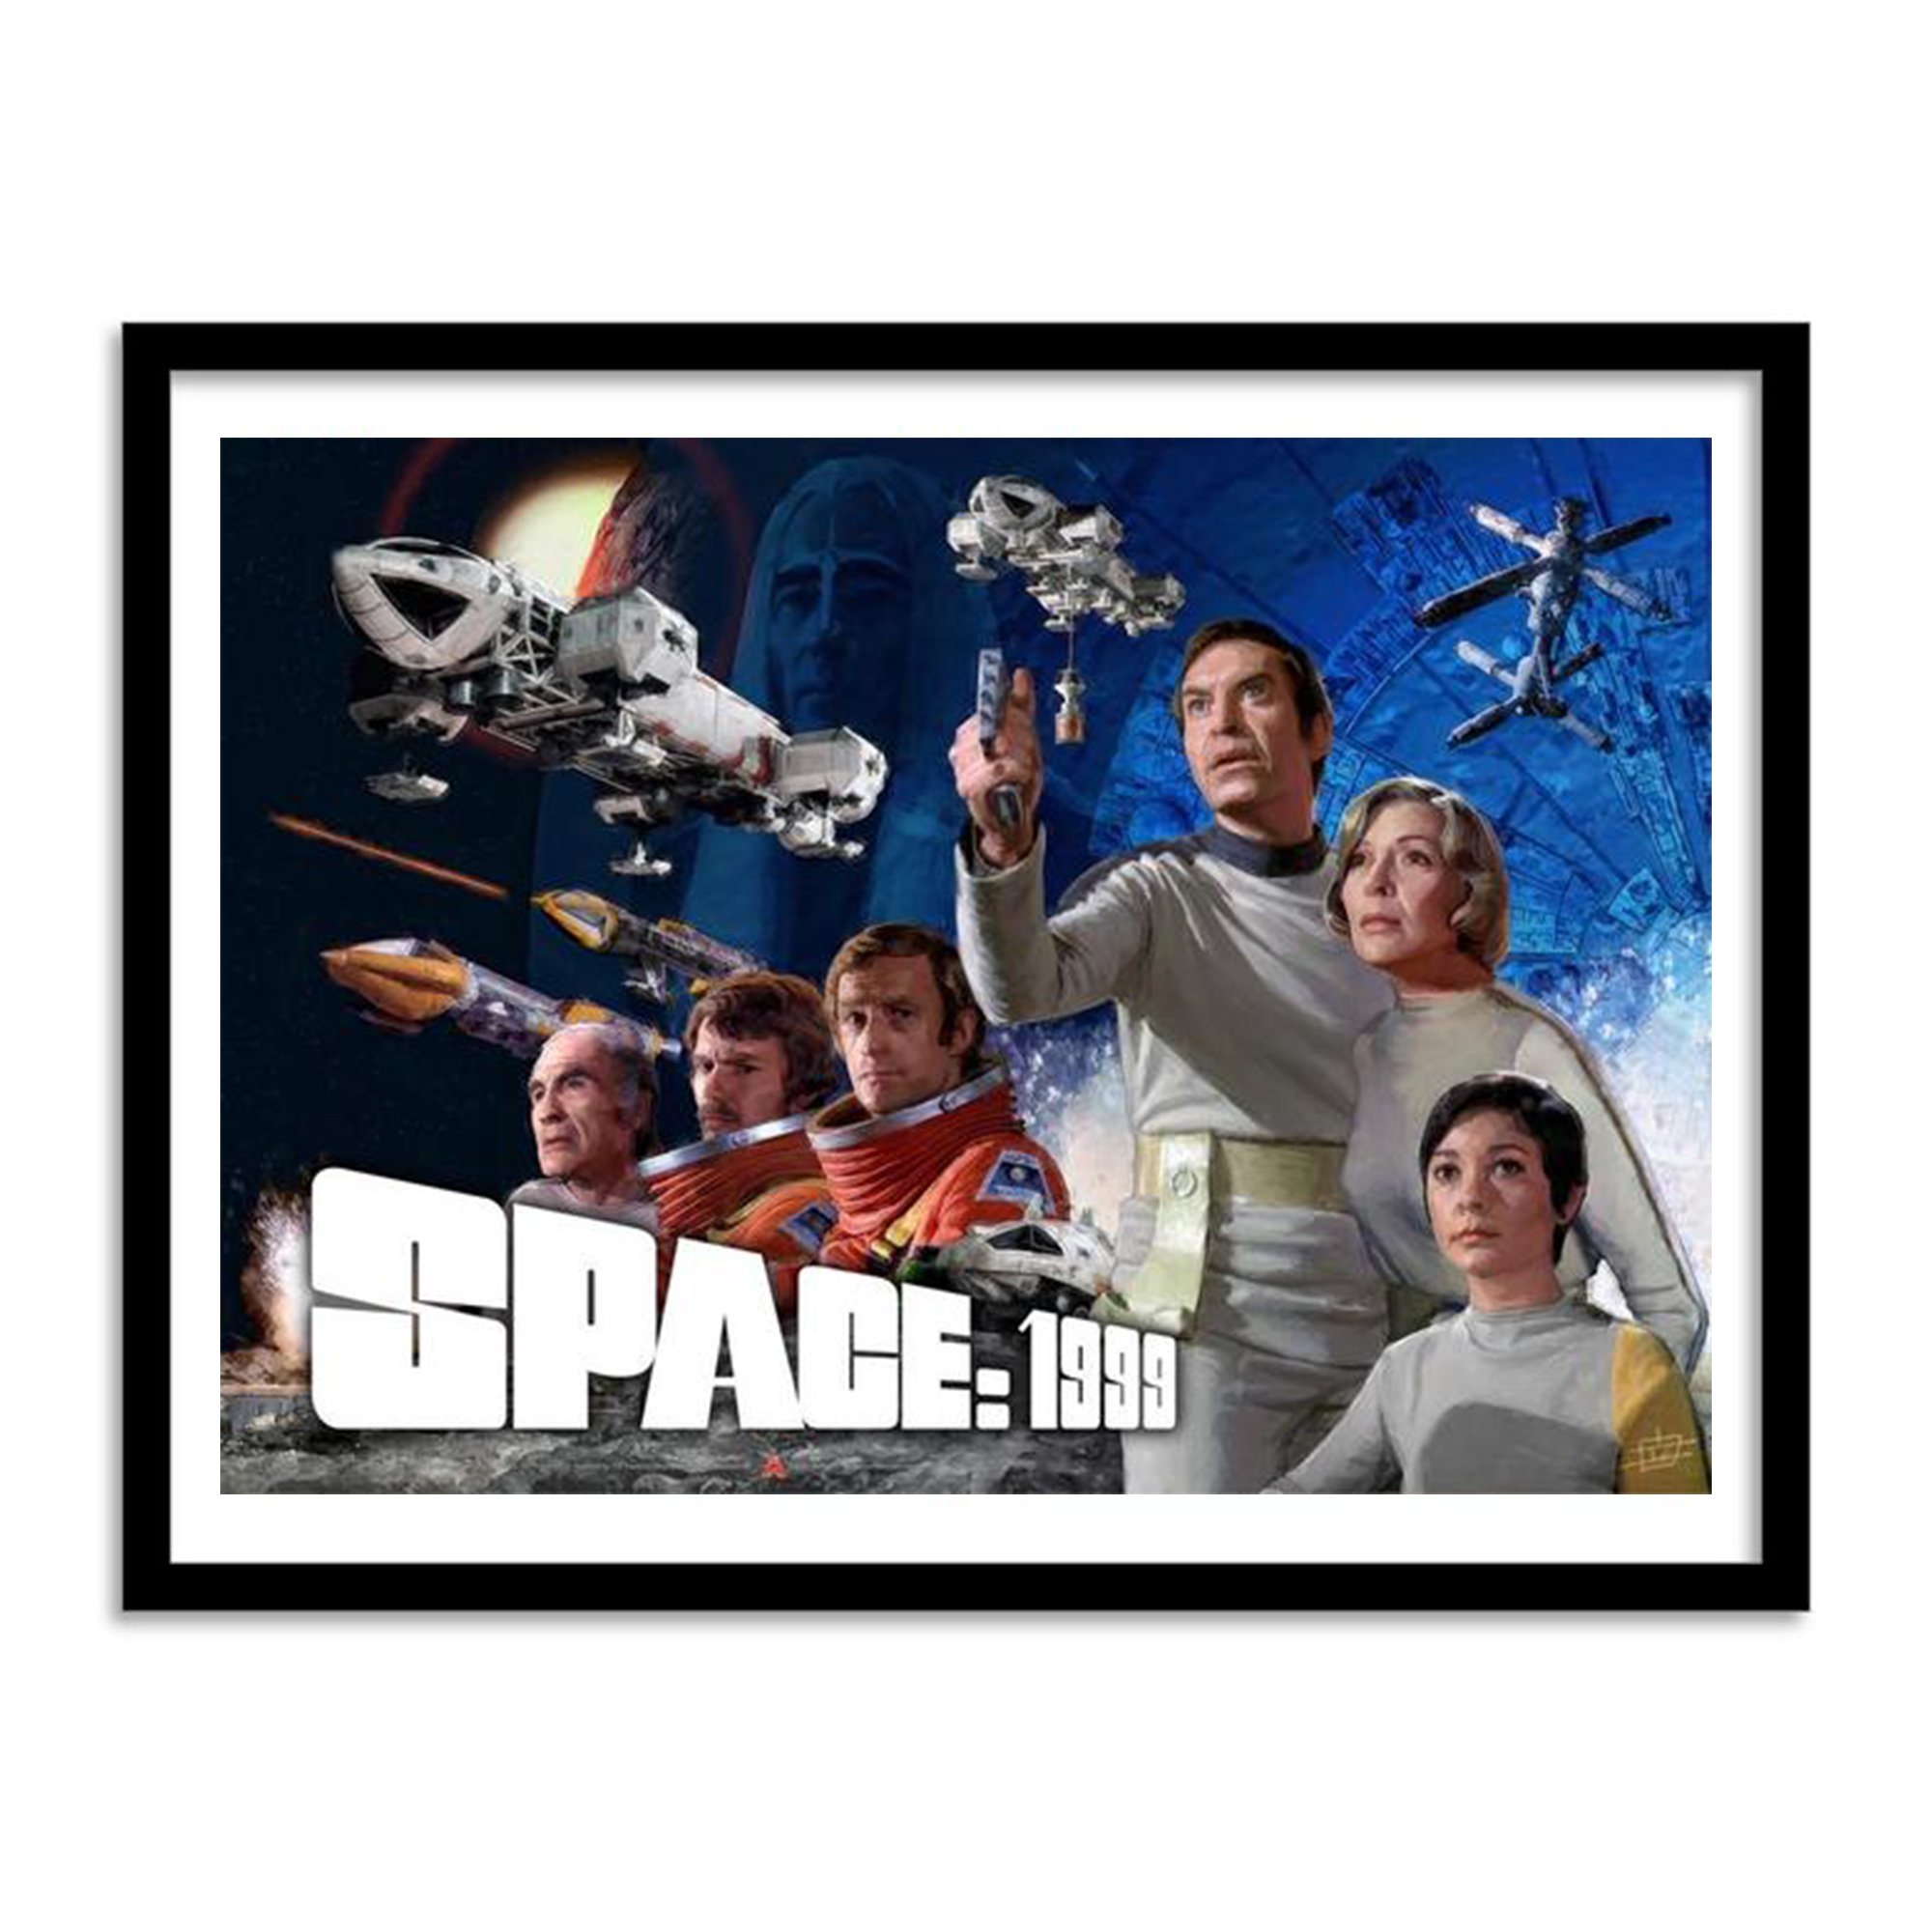 OFFICIAL SPACE 1999 POSTER: SEASON 1